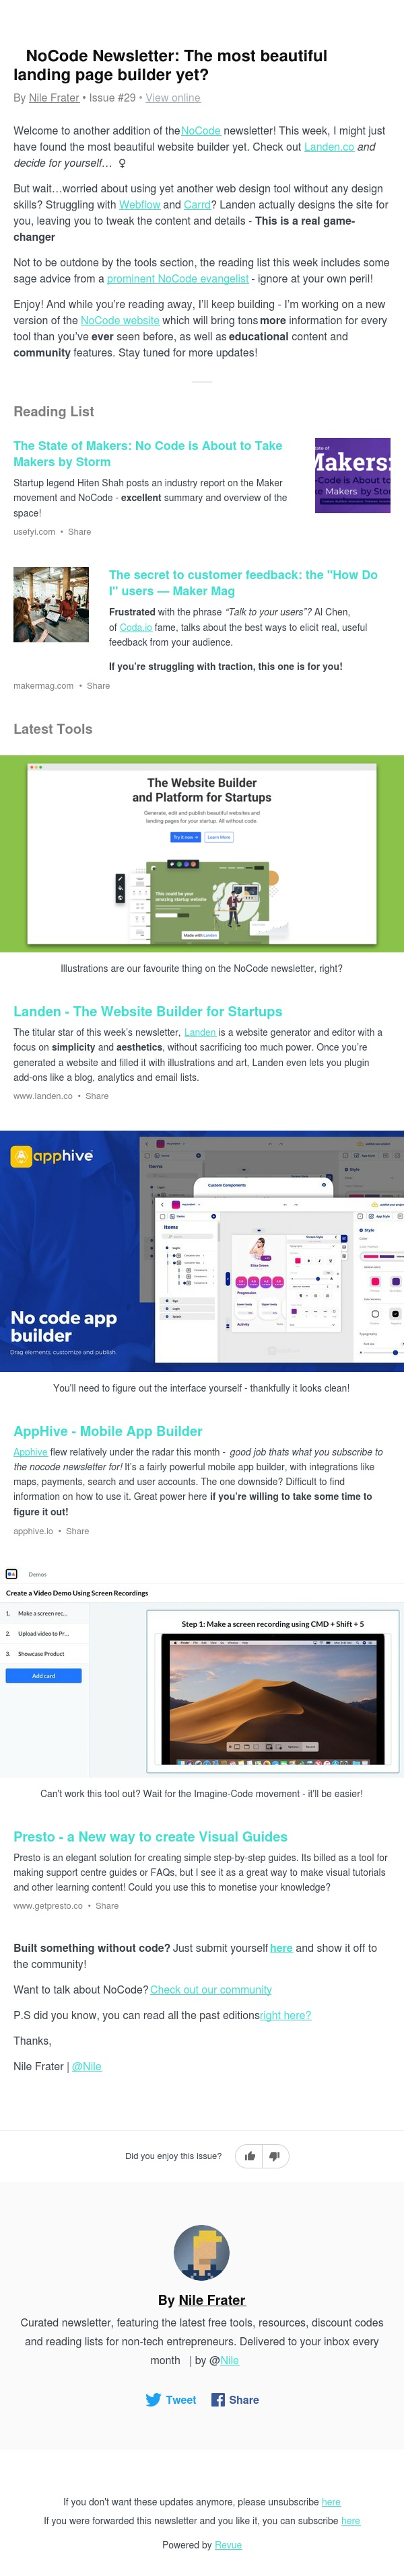 💎 NoCode Newsletter: The most beautiful landing page builder yet?